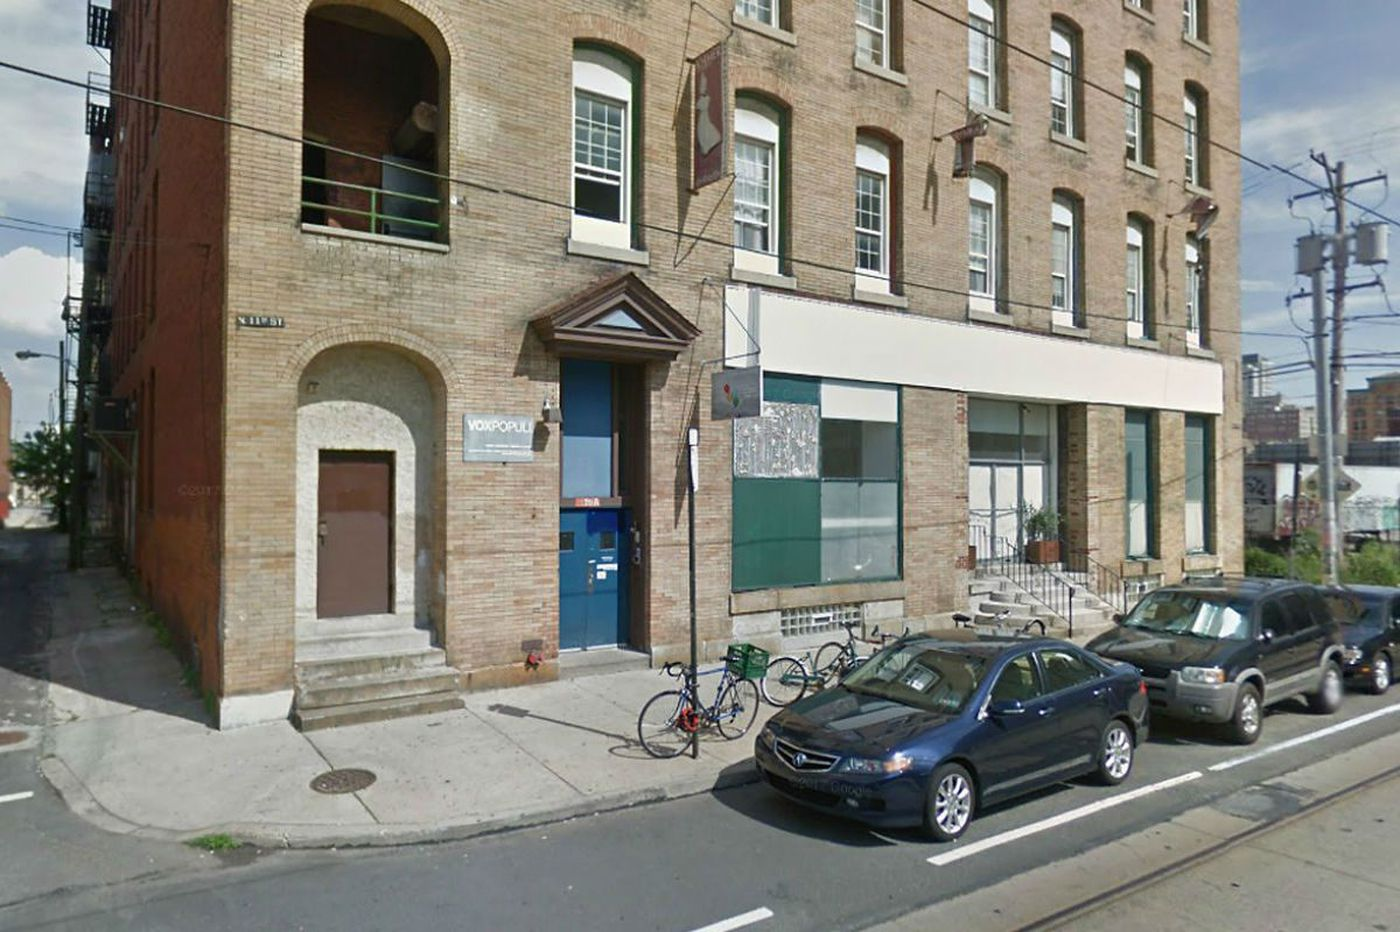 Stairwell fire closes artists' space Vox Populi